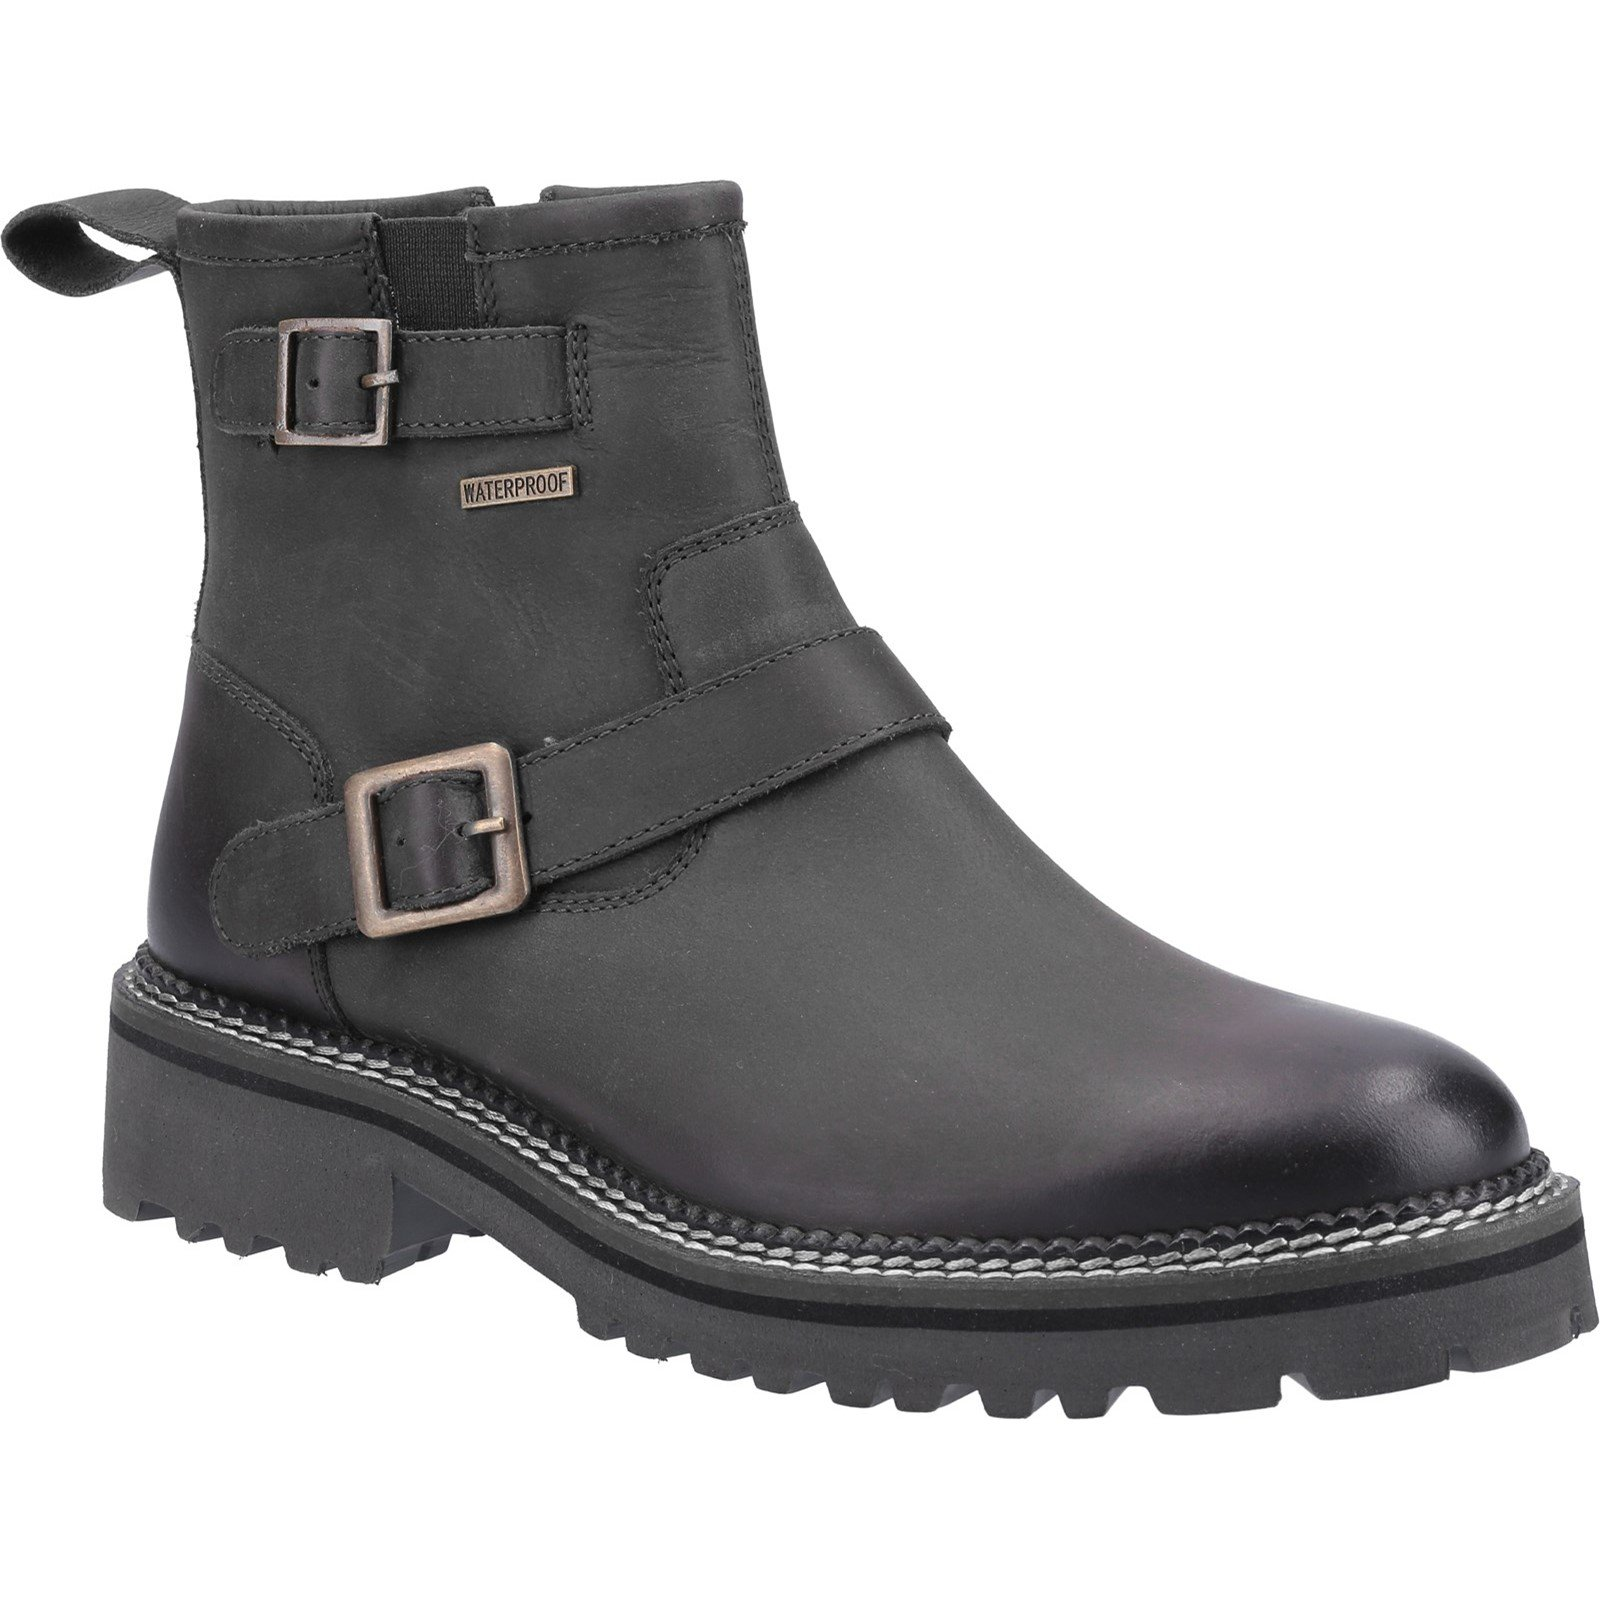 Cotswold Women's Combe Zip Ankle Boot Black 32975 - Black 7